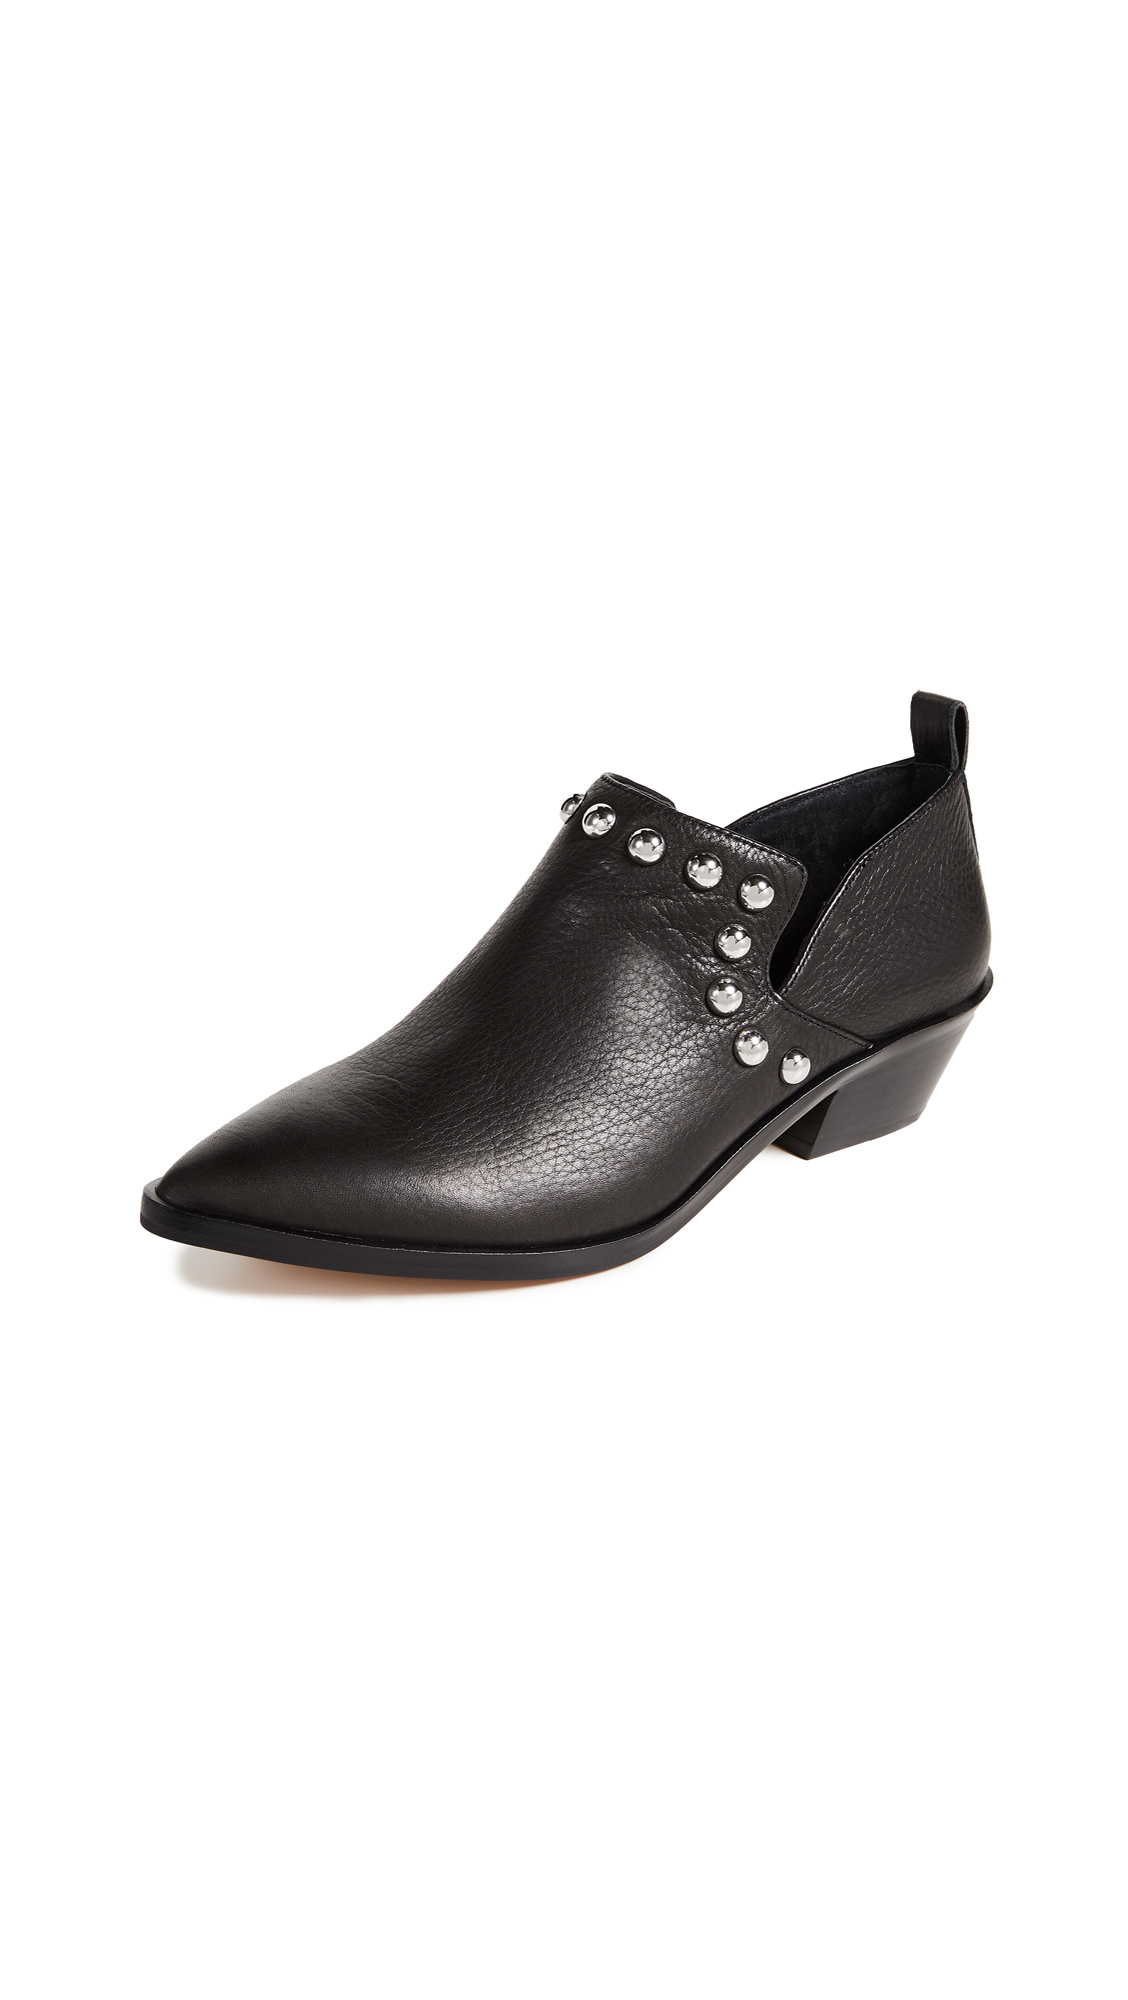 Rebecca Minkoff Katen Studded Booties - Black